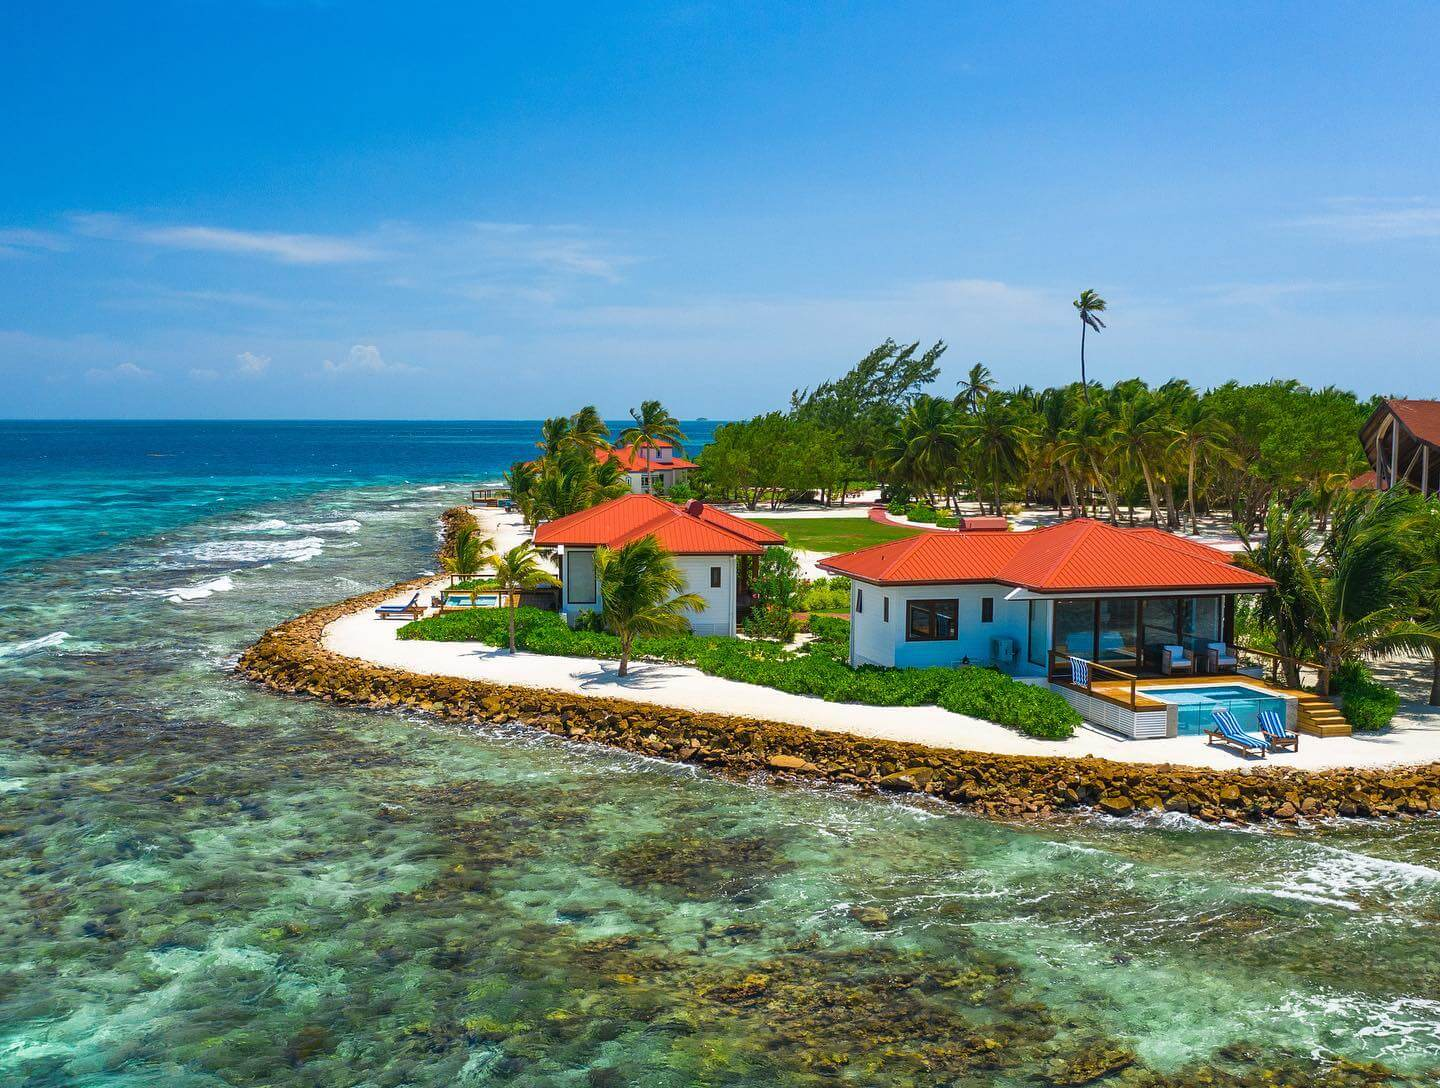 The Best Private Island Resort in Belize To Escape To This Fall/Autumn 2021